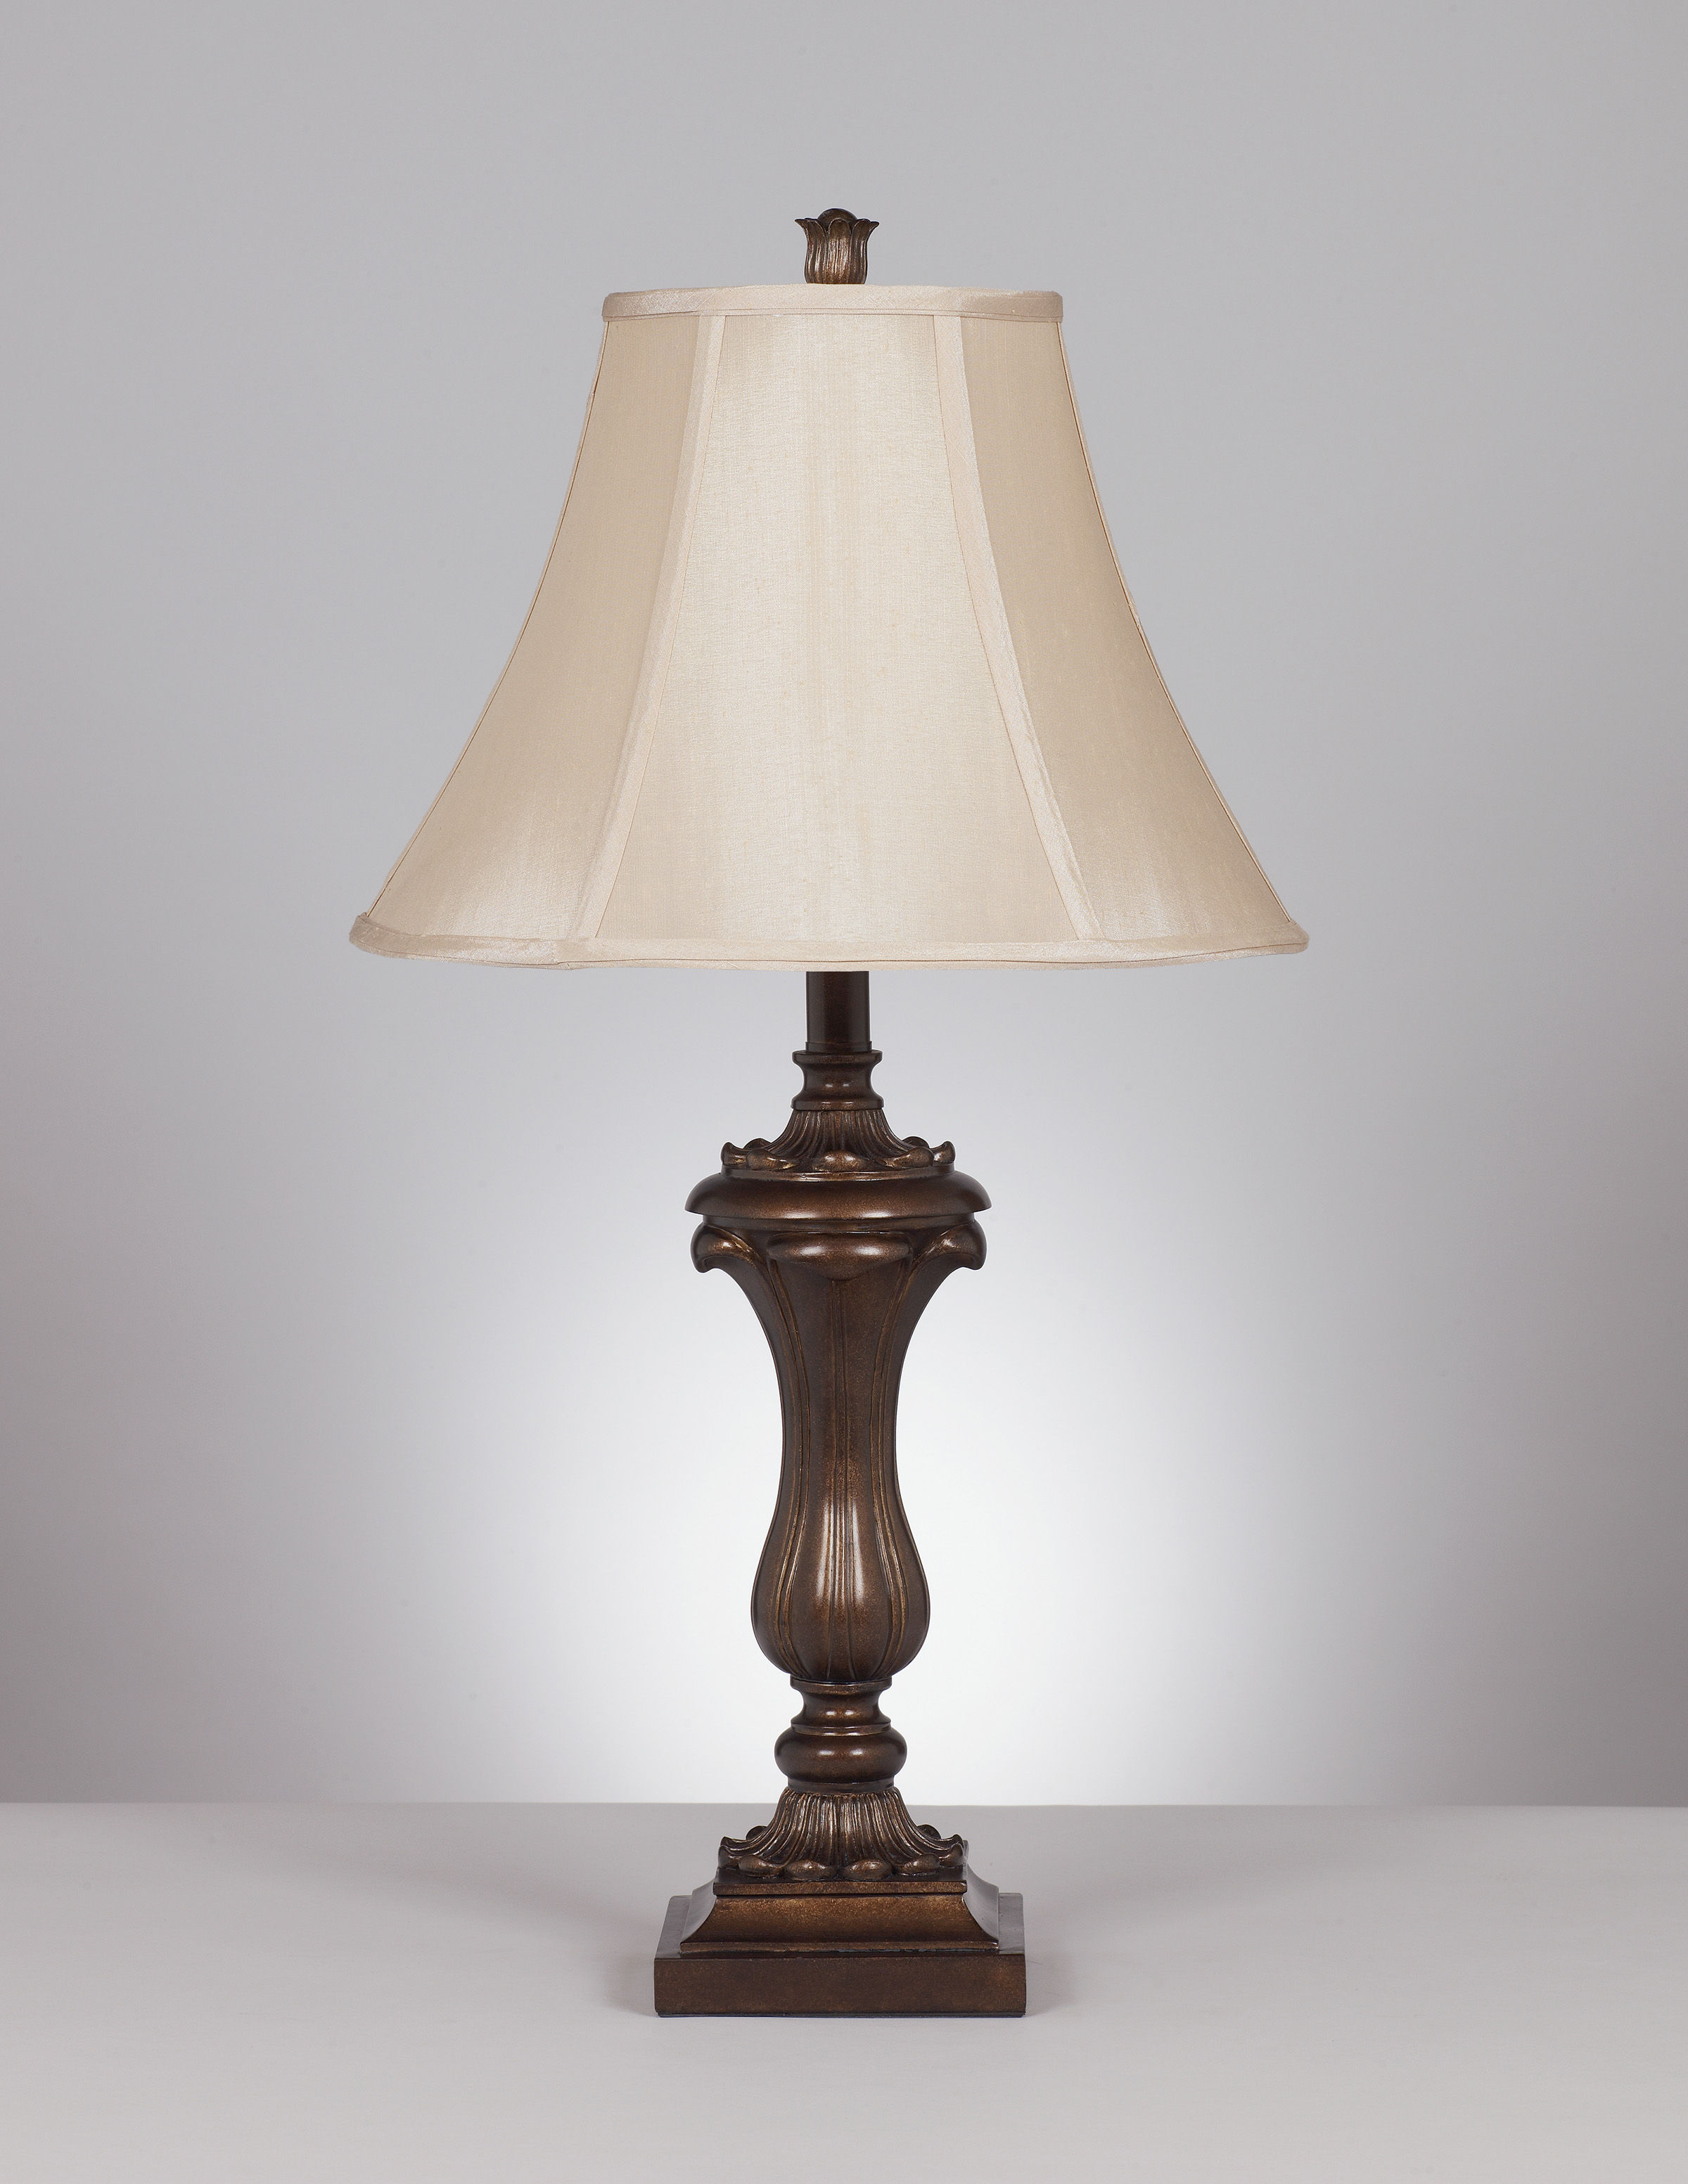 2 mabel traditional antique gold wood table lamps the classy home the classy home best. Black Bedroom Furniture Sets. Home Design Ideas